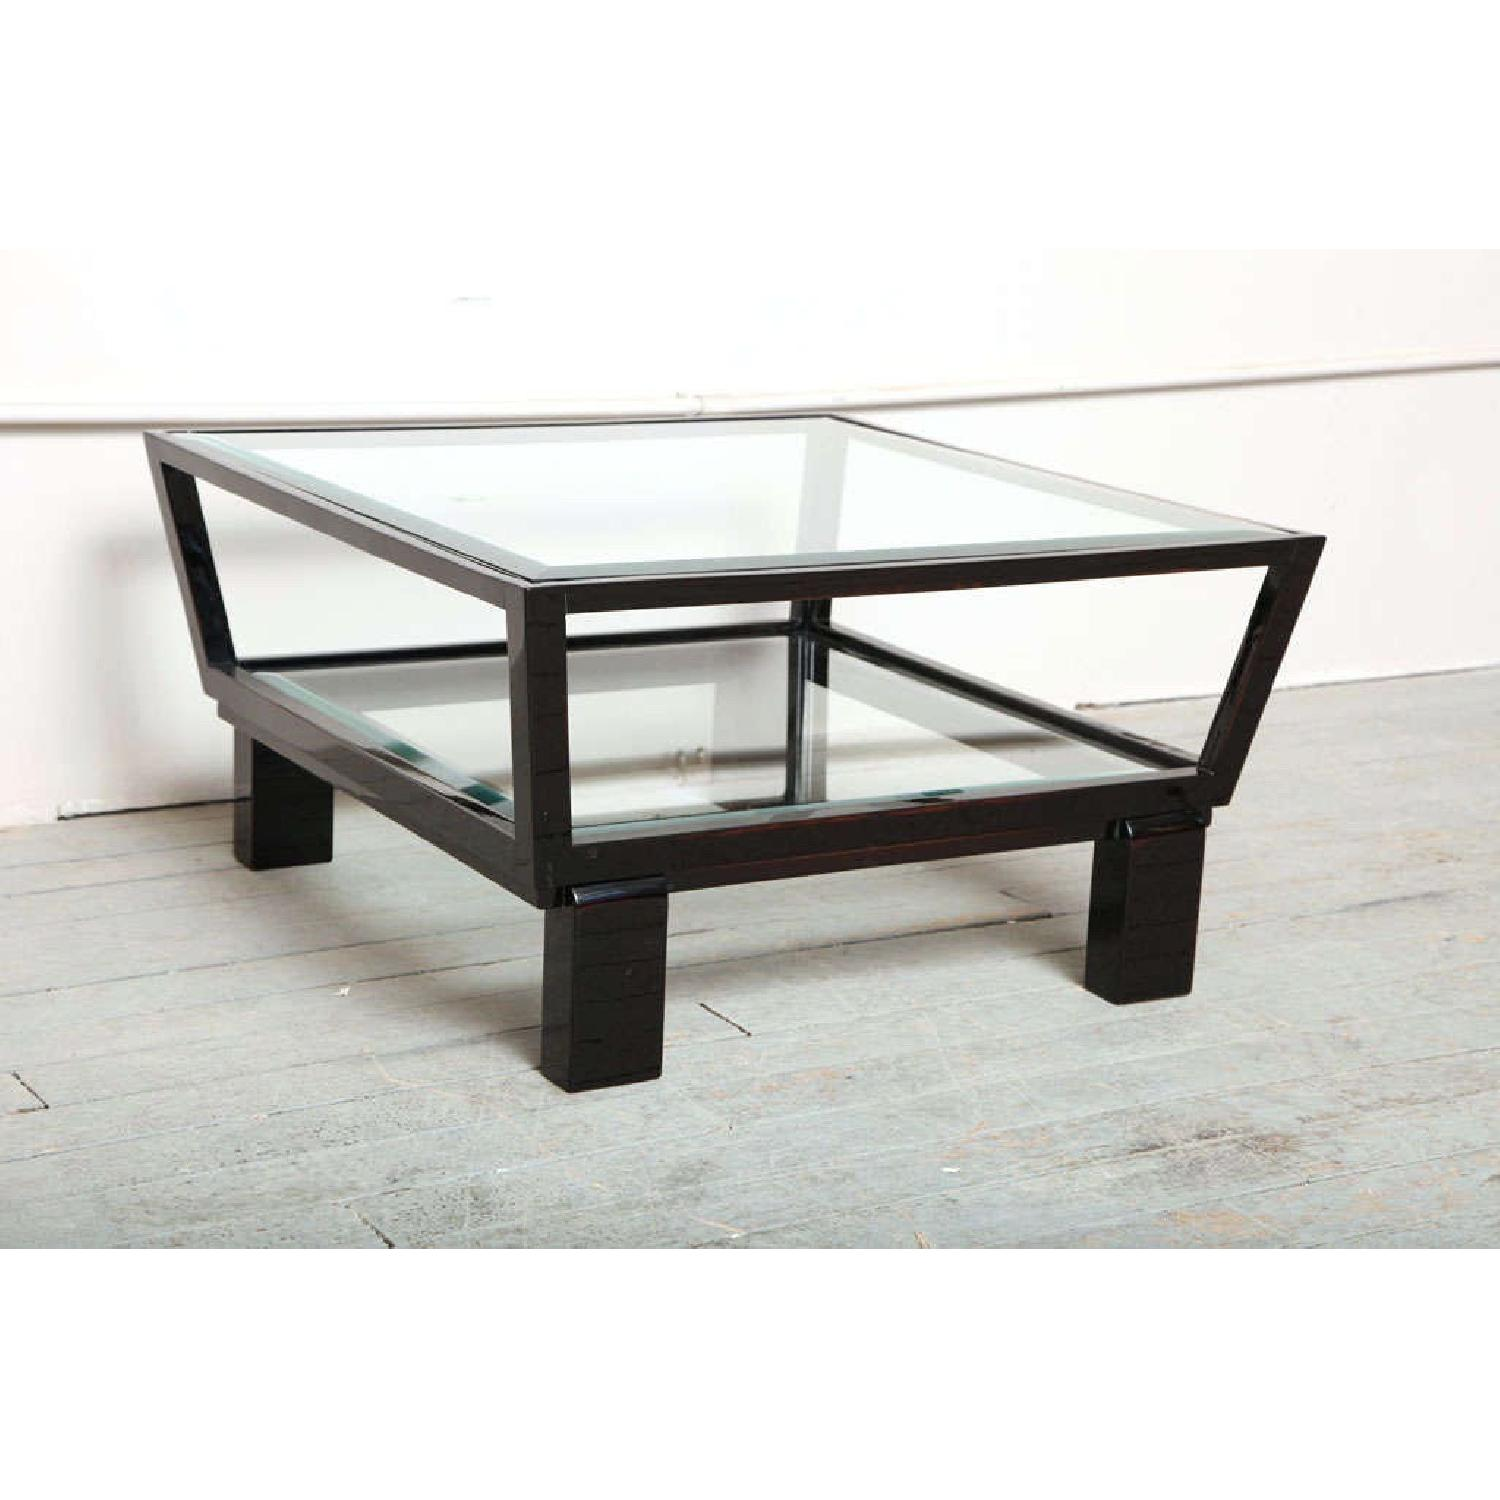 Black & Glass Top Side Tables - image-1